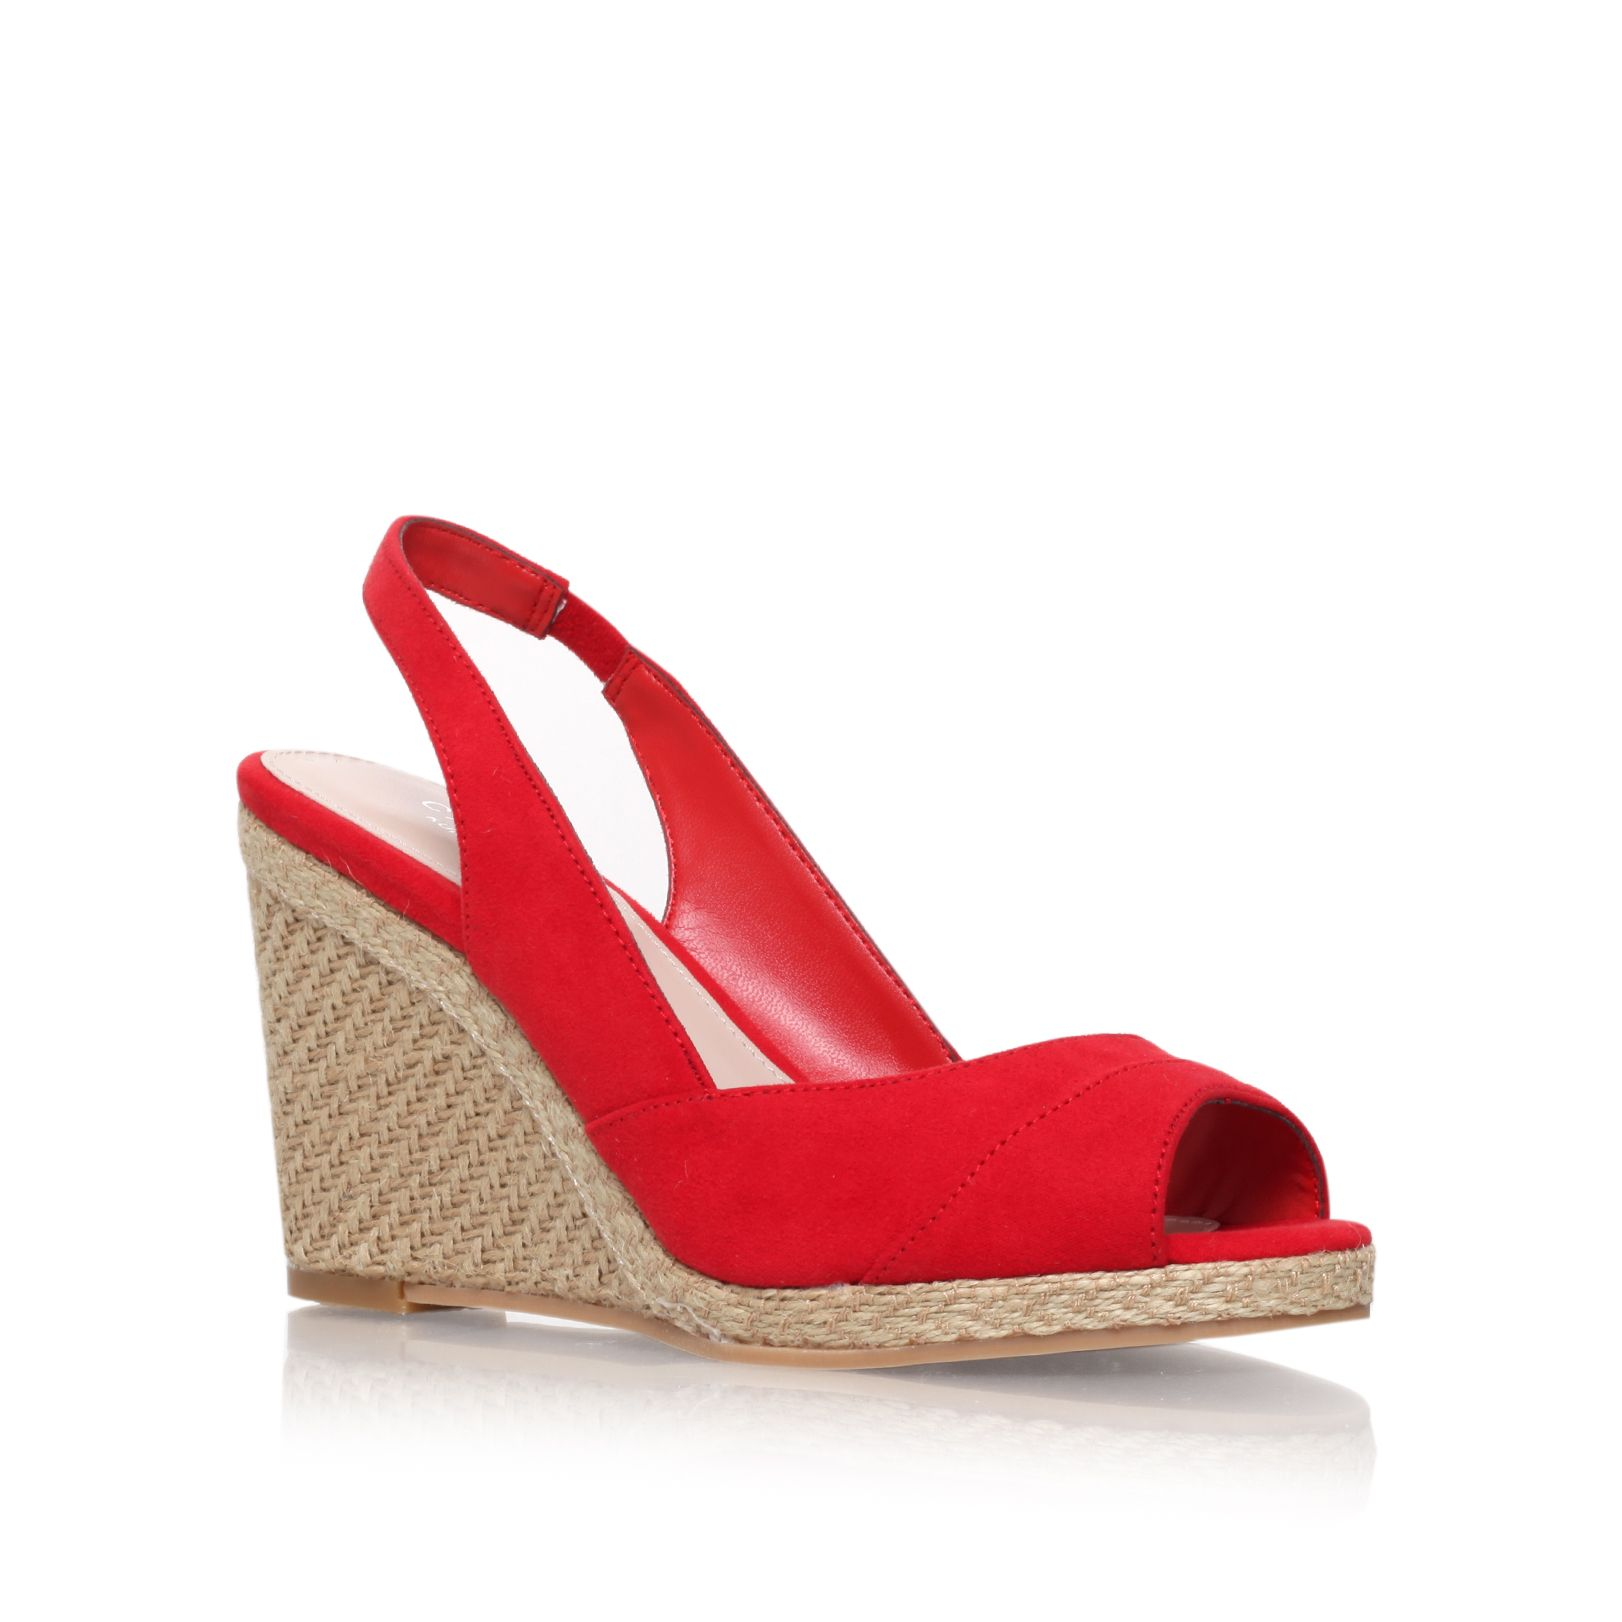 Susan high heel espadrille wedge sandals